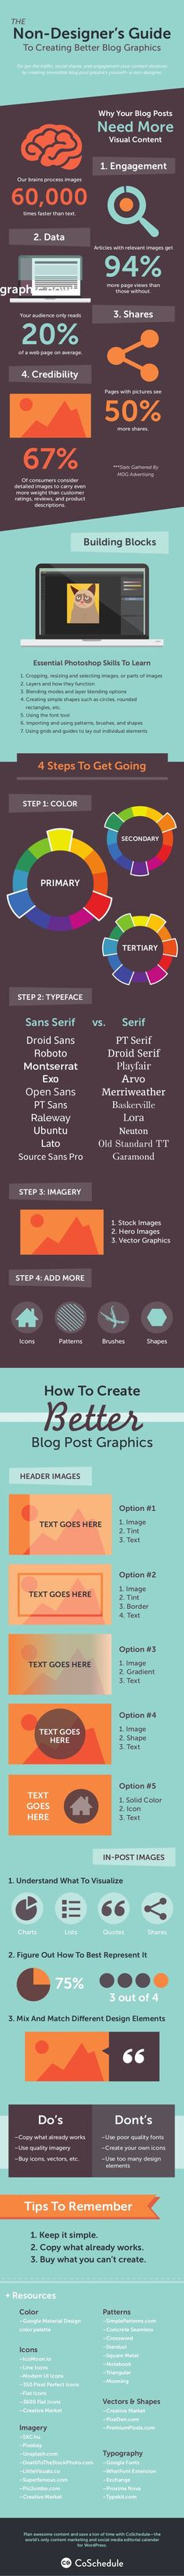 The Non-Designer's Guide to Create Amazing Visual Content for Your Blog #Infographic